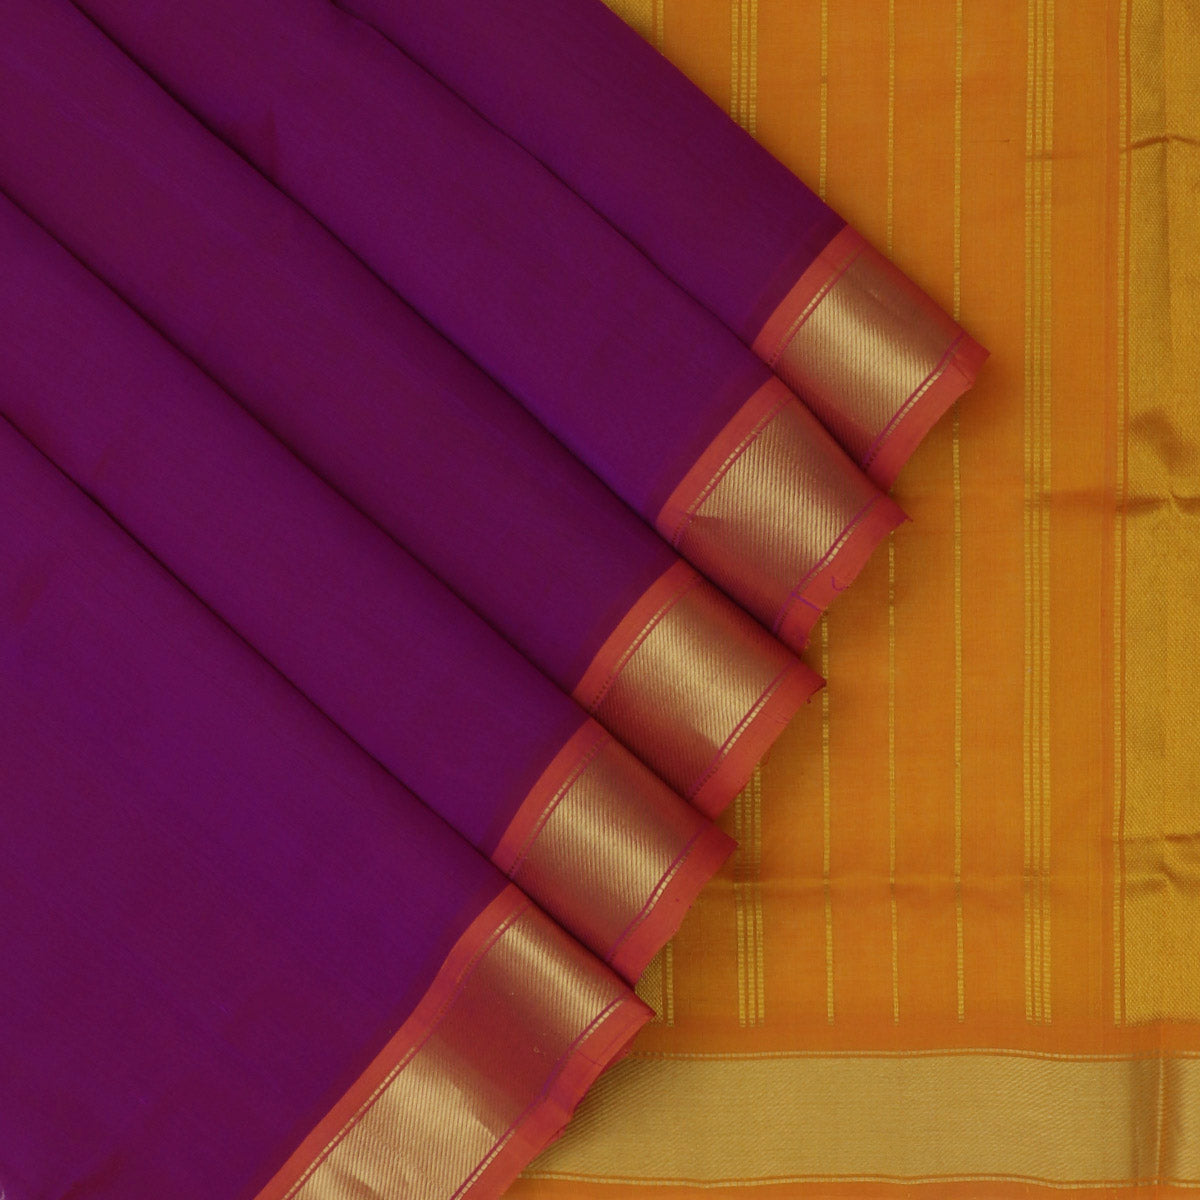 Silk Cotton Saree-Violet and Honey Color with Simple zari border